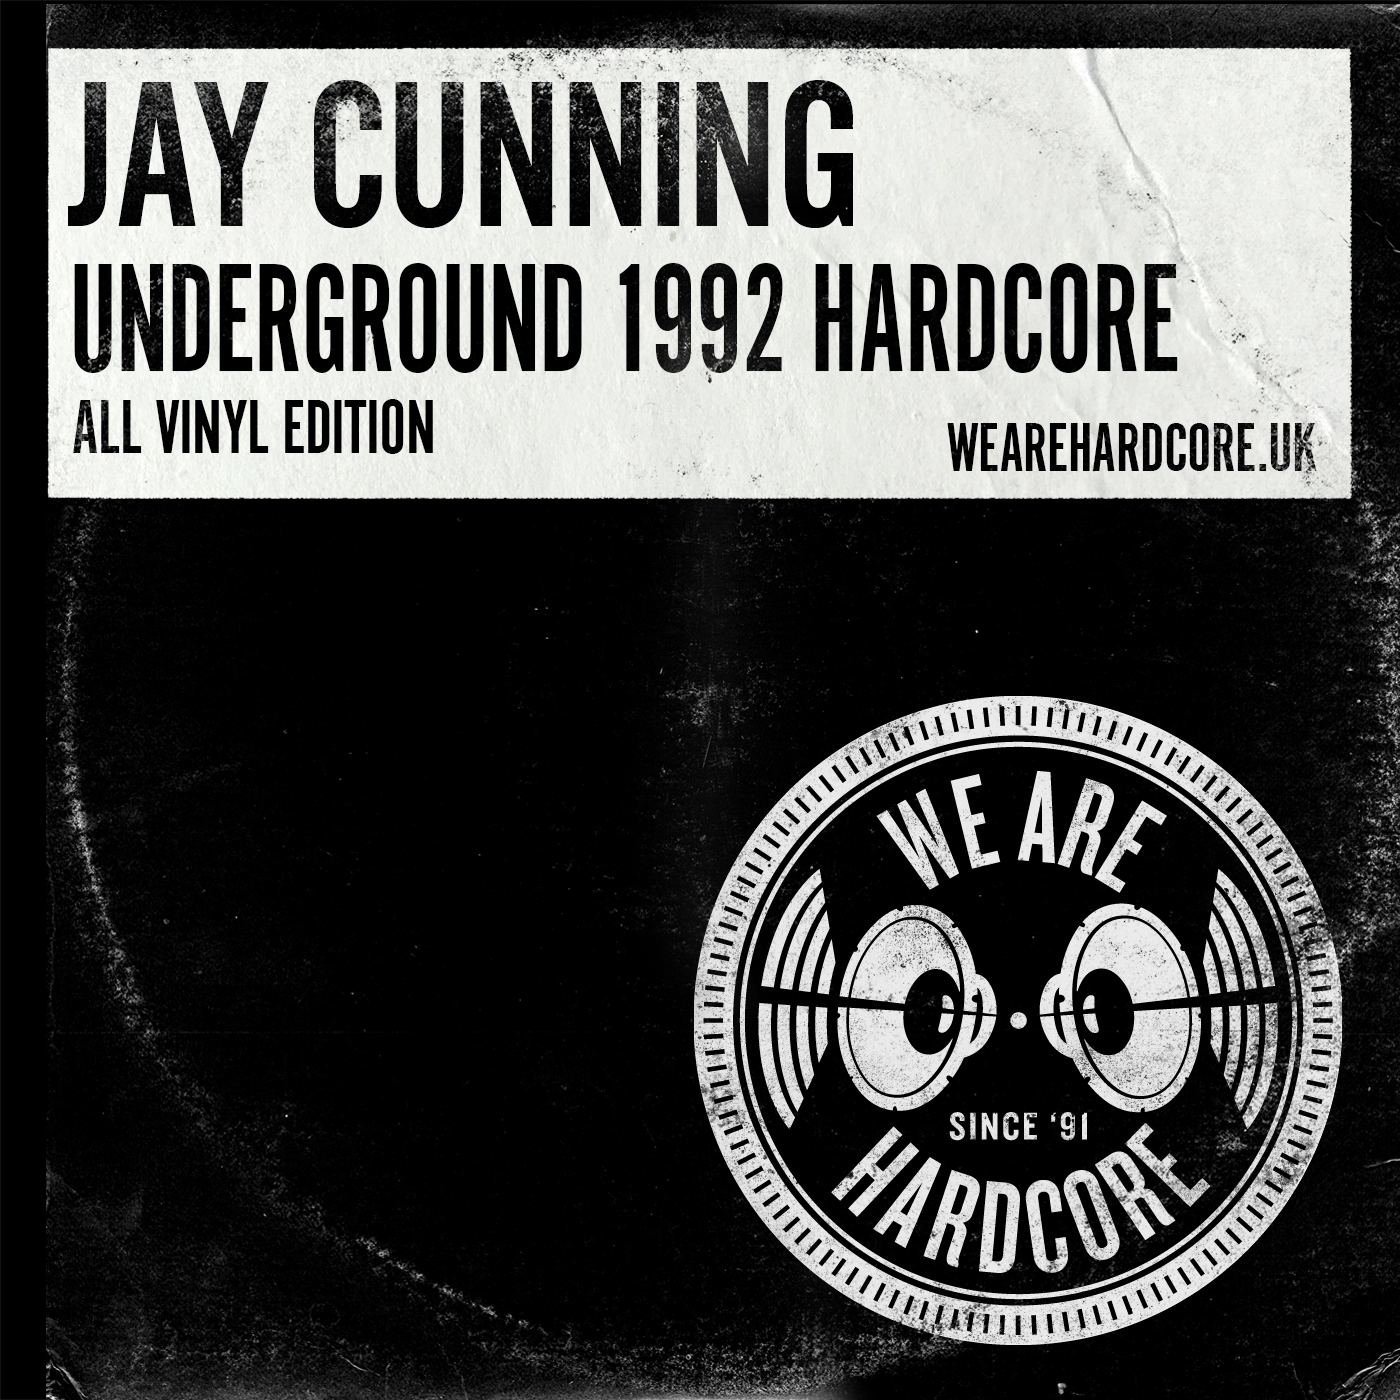 All Vinyl 1992 Underground Hardcore - Jay Cunning - WE ARE HARDCORE